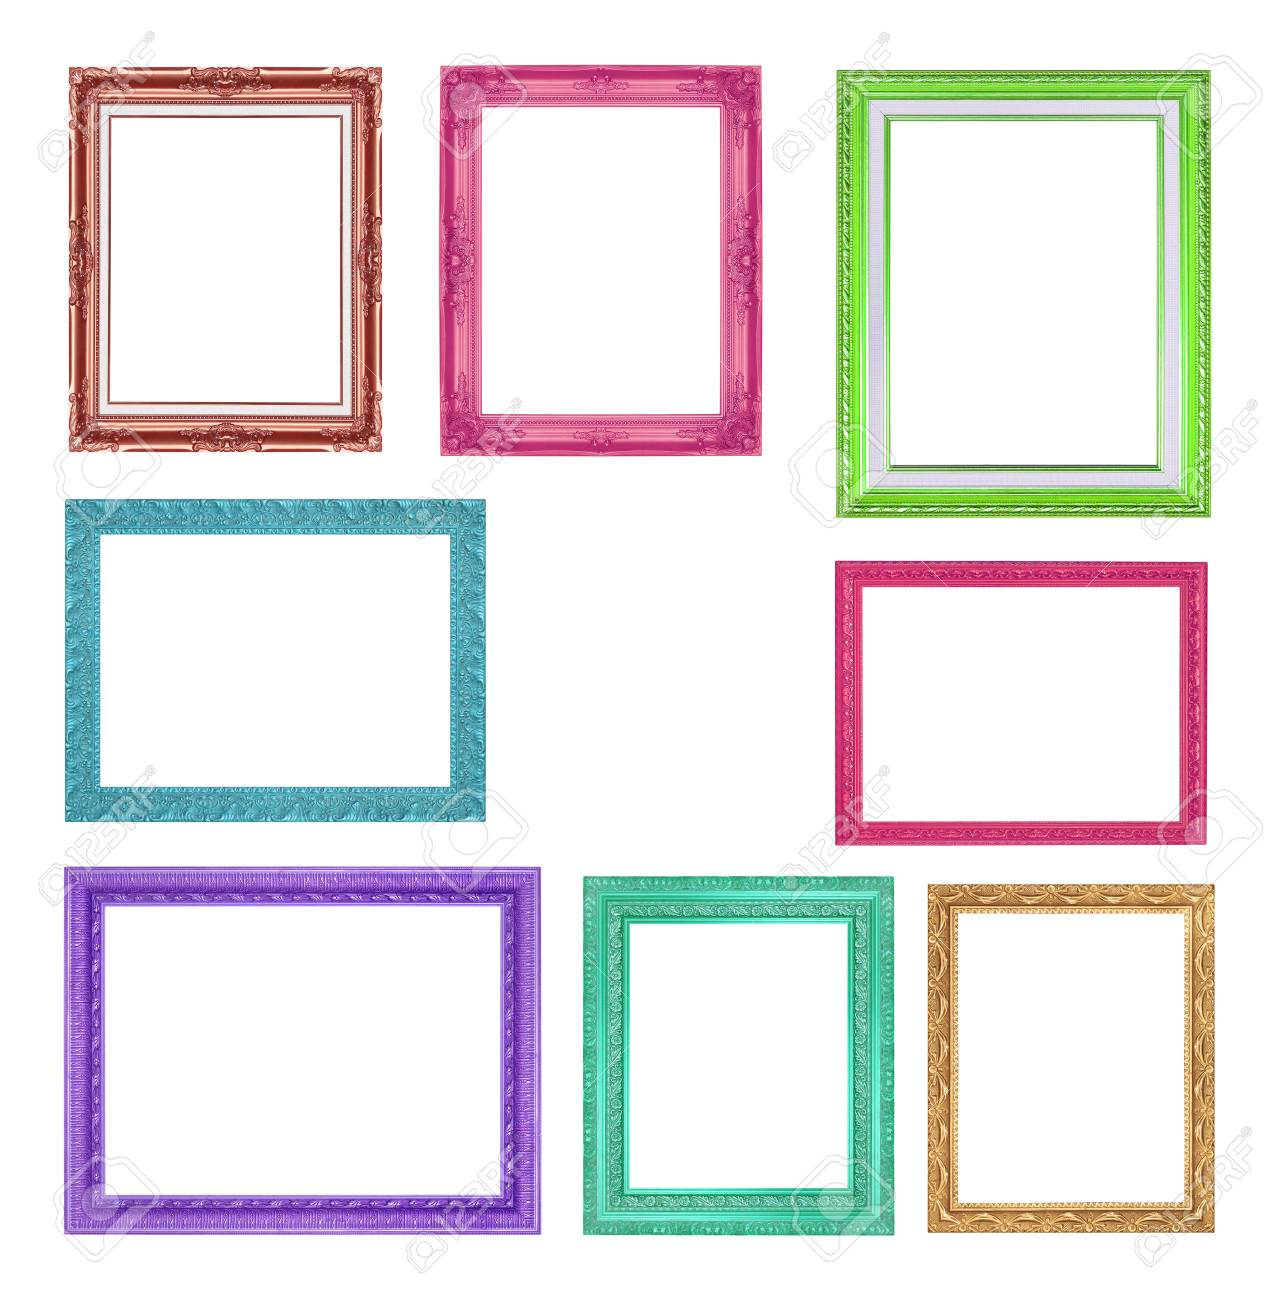 cf746af2a7dd The collection colorful frames on the white background Stock Photo -  83495844